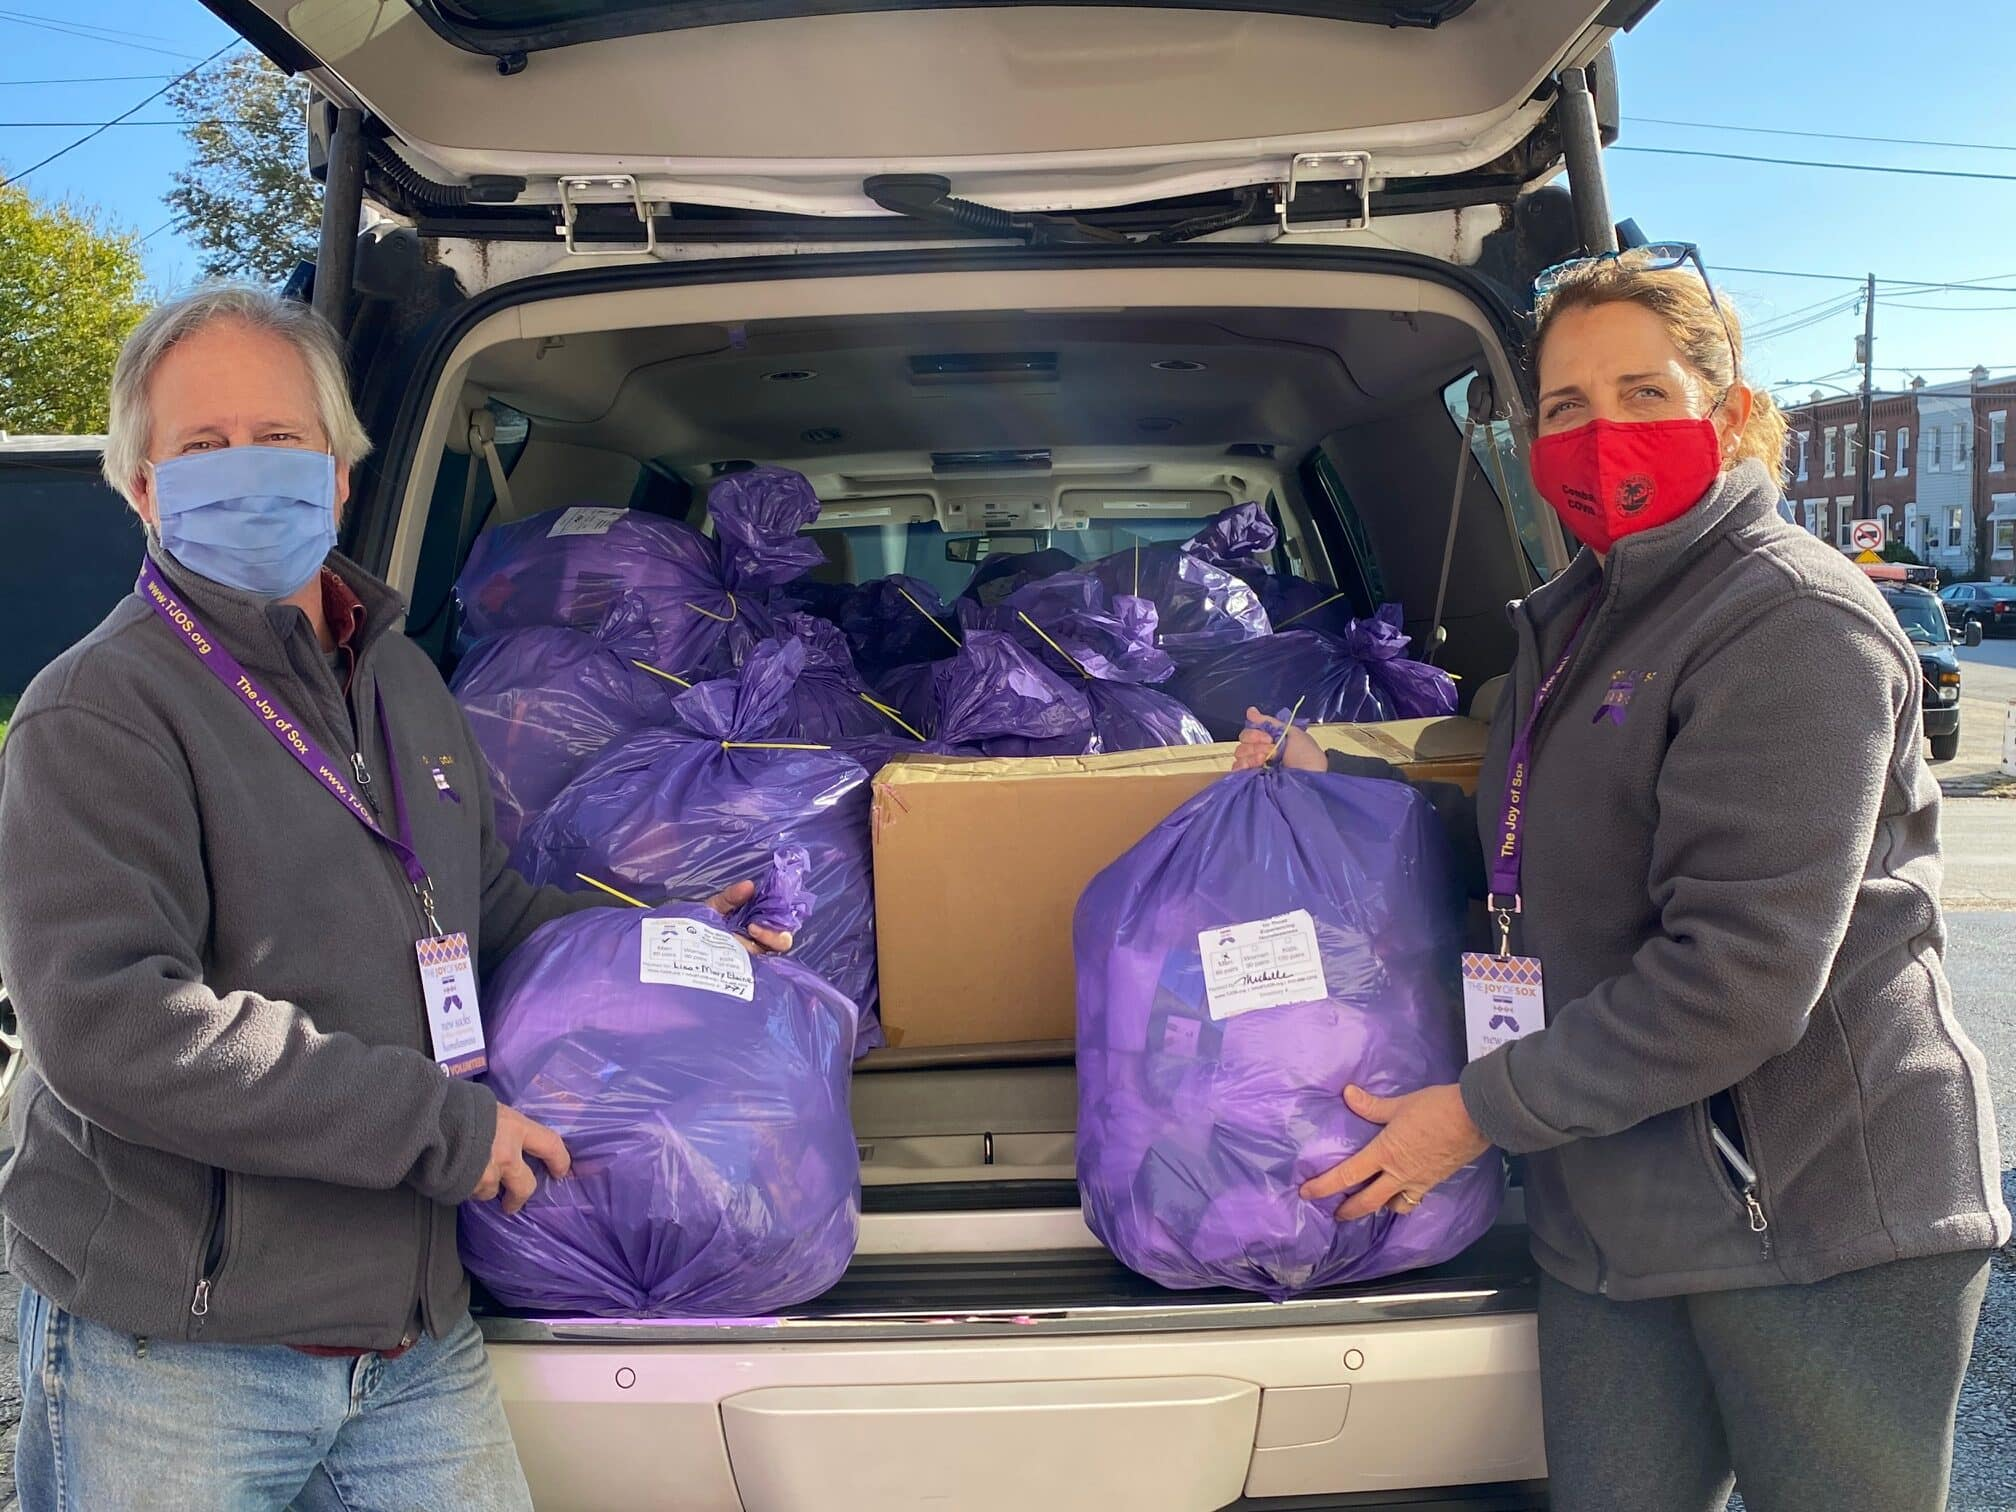 Greg (L) and Tracy loading bags of socks to be distributed to shelters.